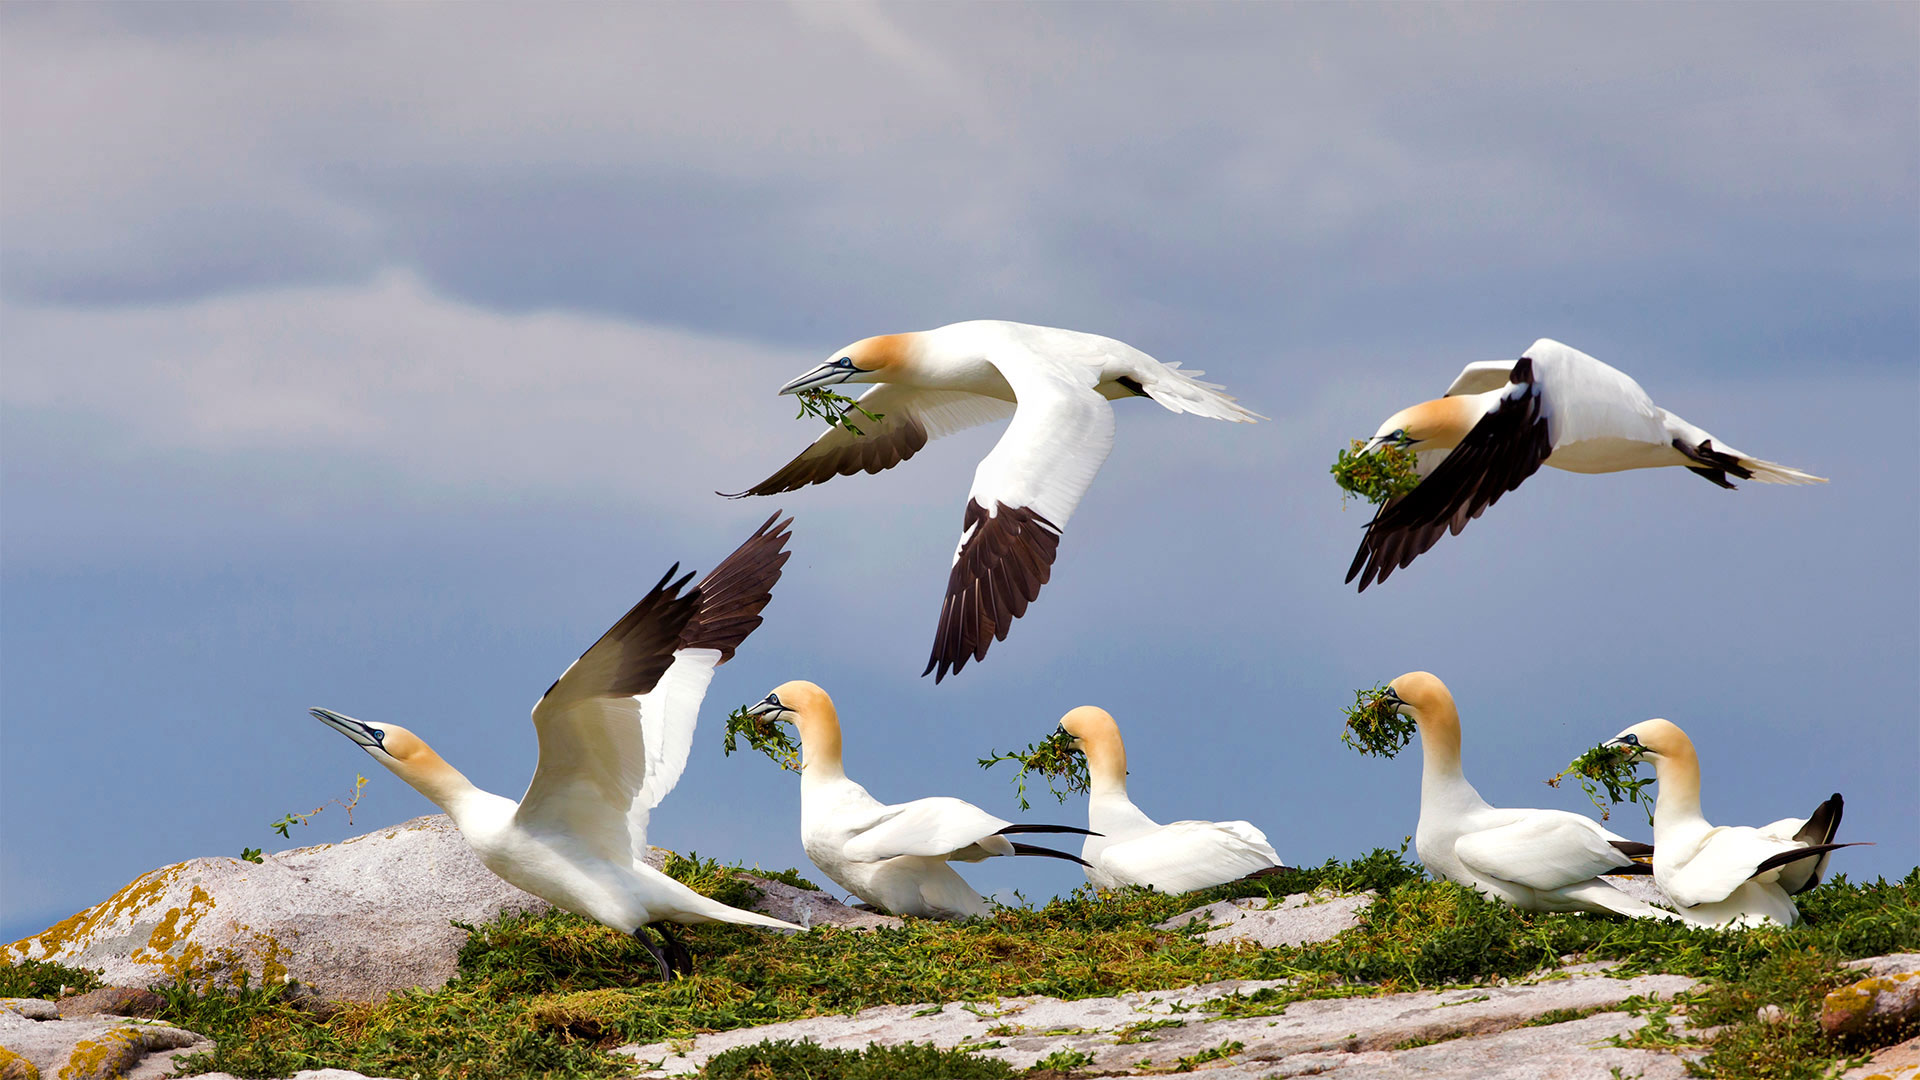 Northern gannets on Great Saltee Island, Ireland (© Danny Green/Minden Pictures)(Bing United States)